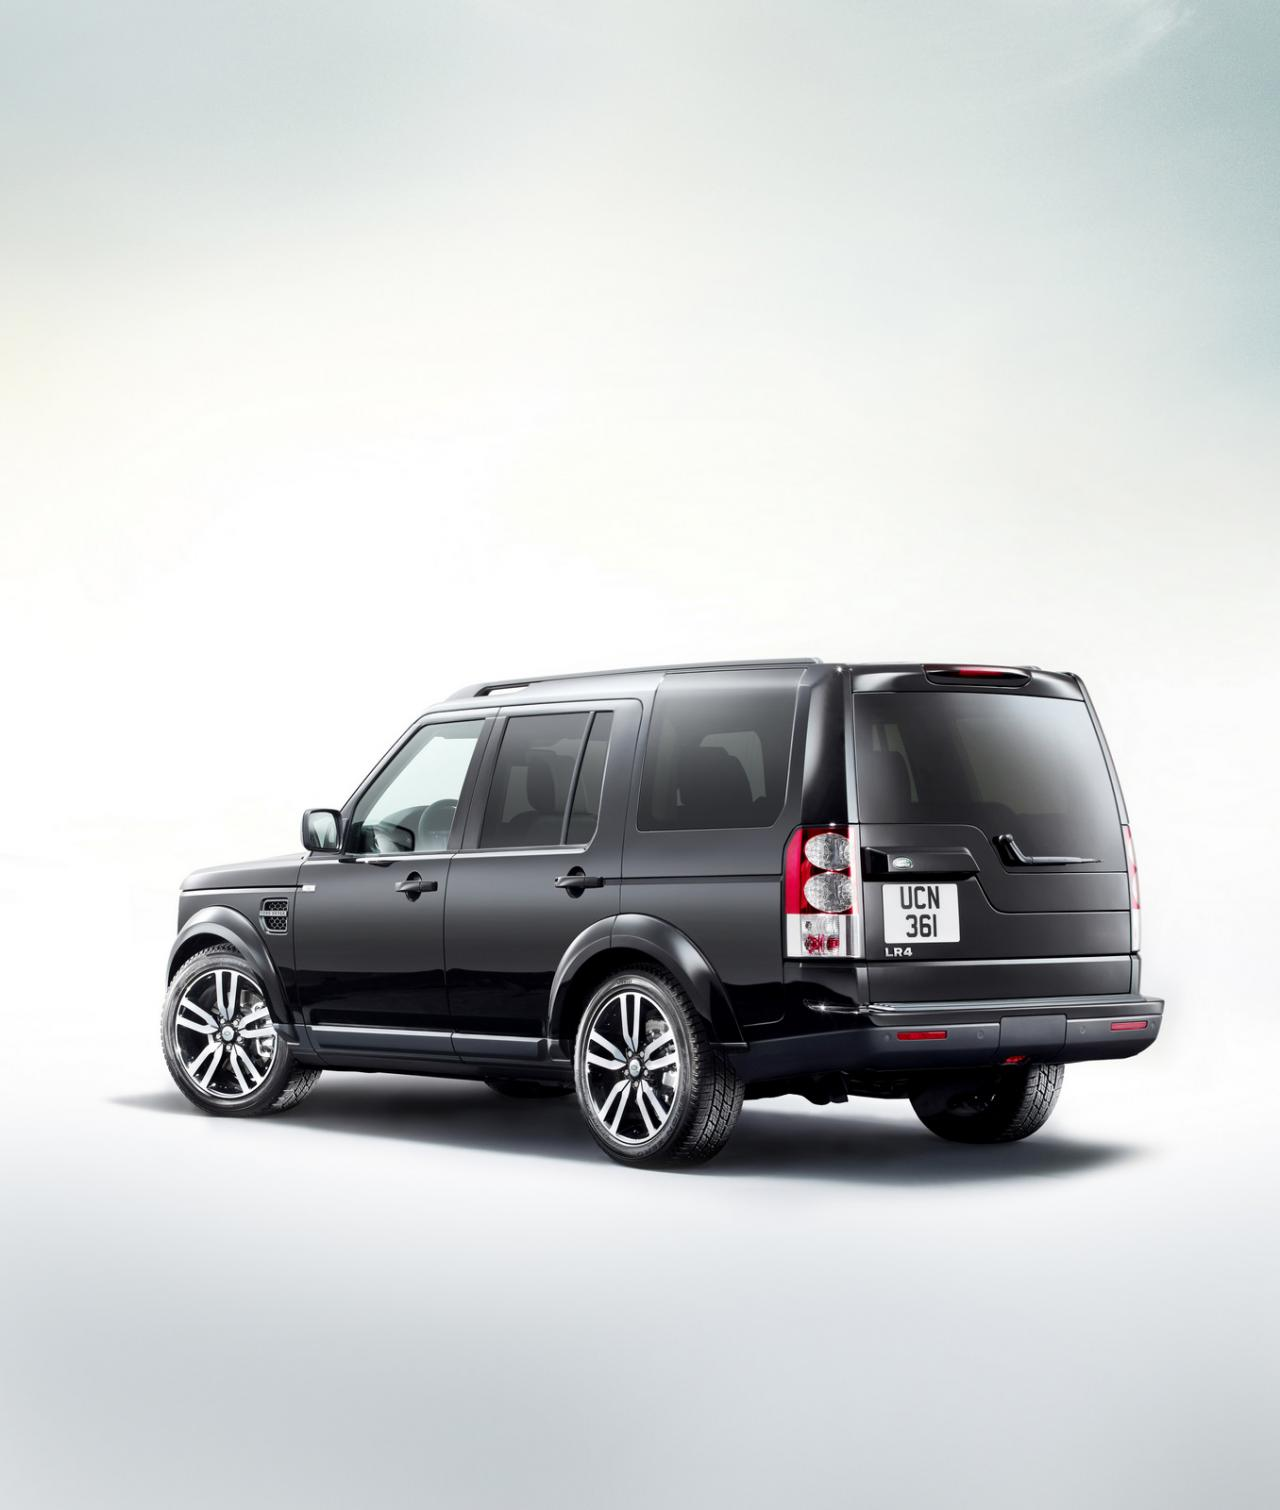 Land Rover Discovery 1995 Full Width: 2011 Land Rover Discovery 4 Landmark Special Edition